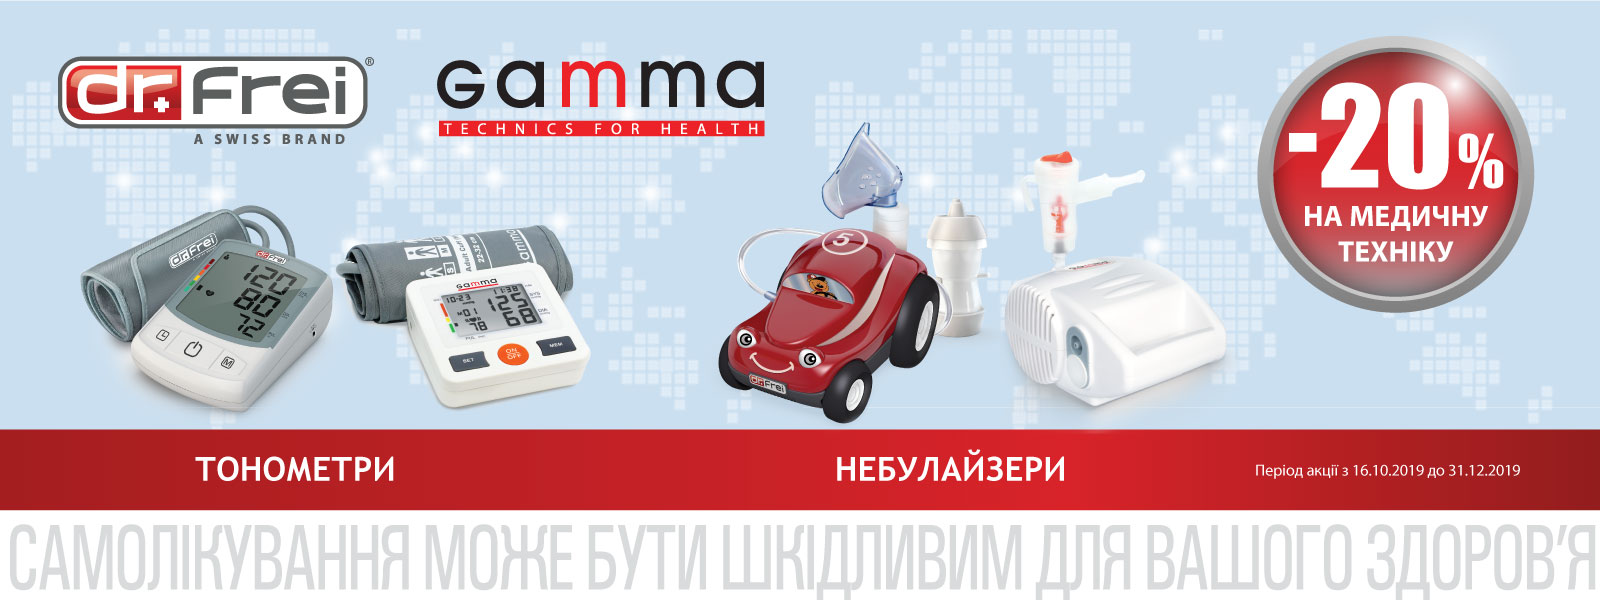 <br /> <b>Notice</b>:  Undefined index: alt in <b>/var/www/triolx/triol.org.ua/views/site/content/sales_new.php</b> on line <b>24</b><br />